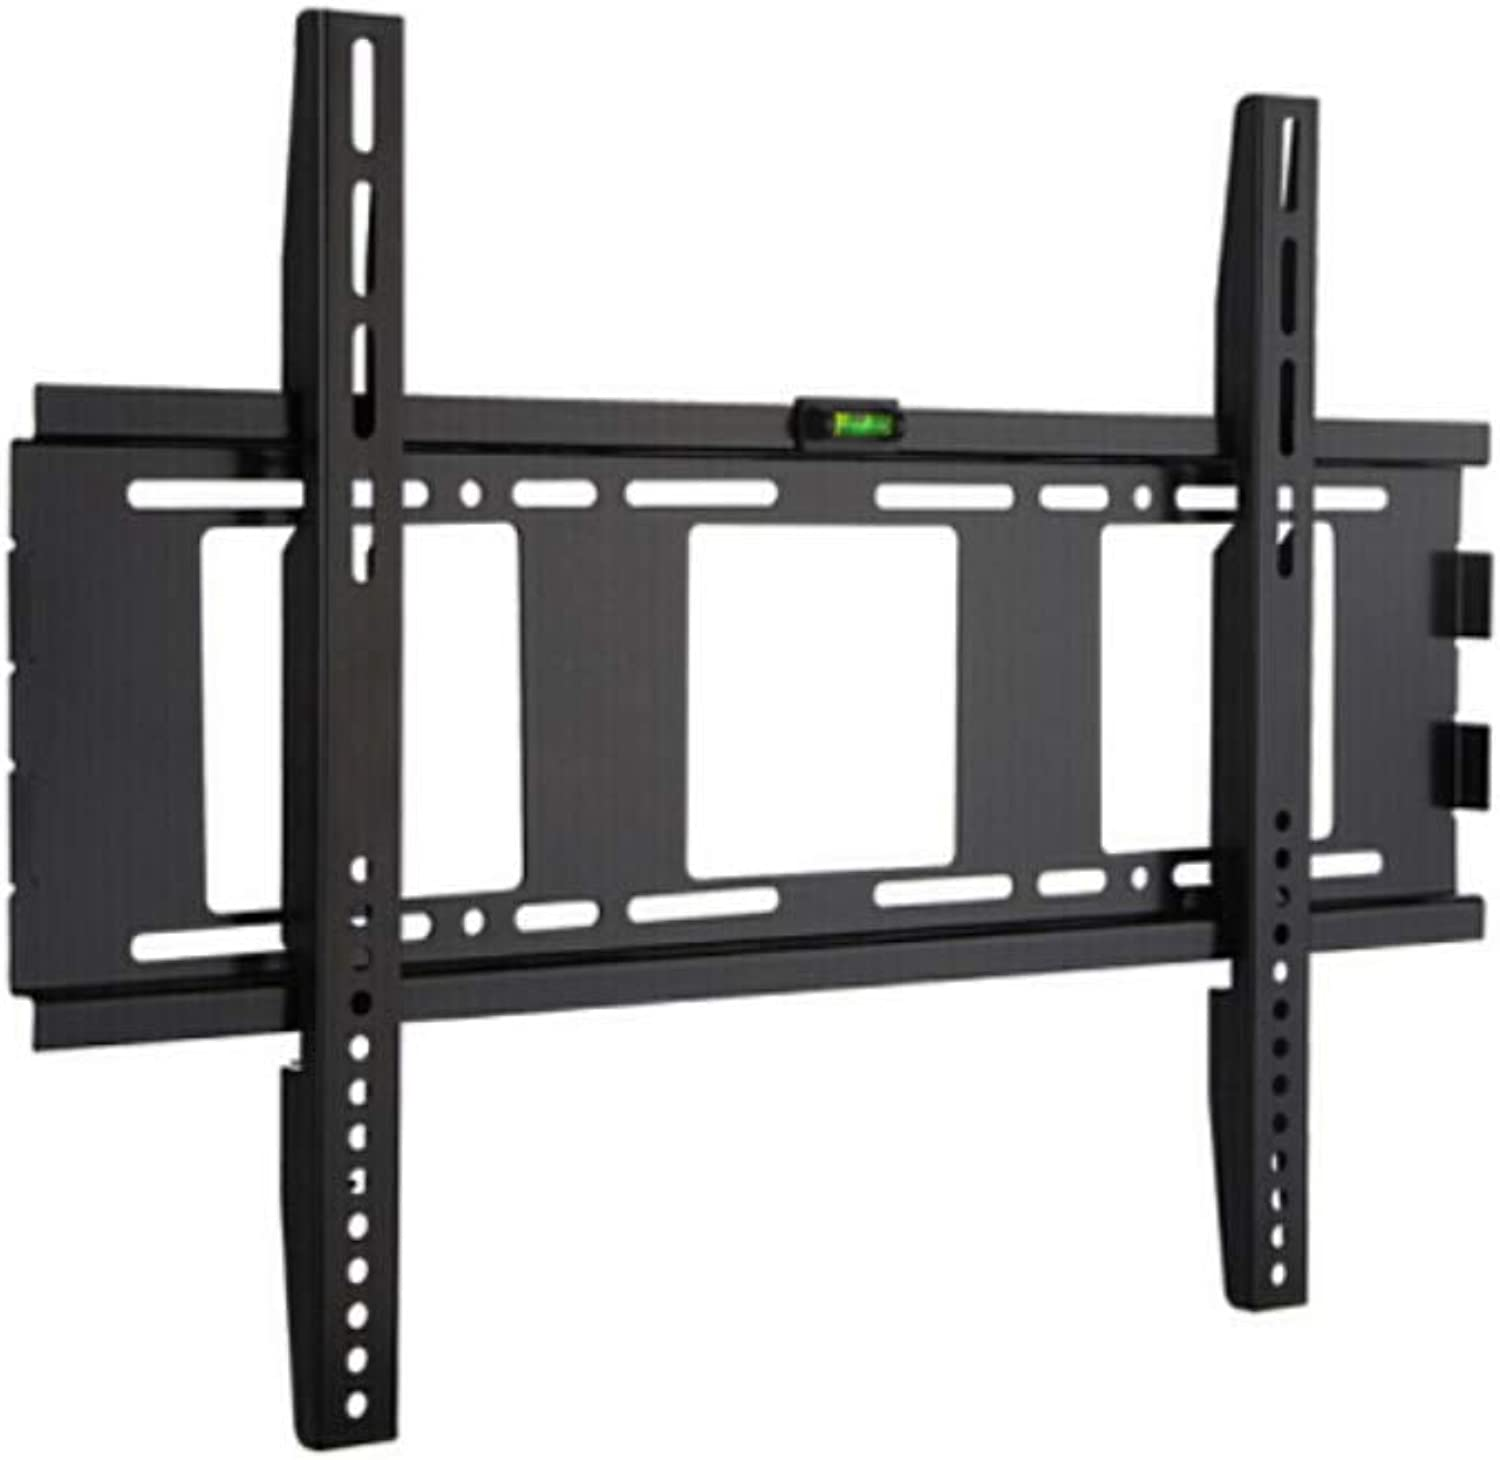 32-65 Inch Tilt TV Wall Mount Bracket with Spirit Level General Purpose LCD TV Hanging Rack Mount